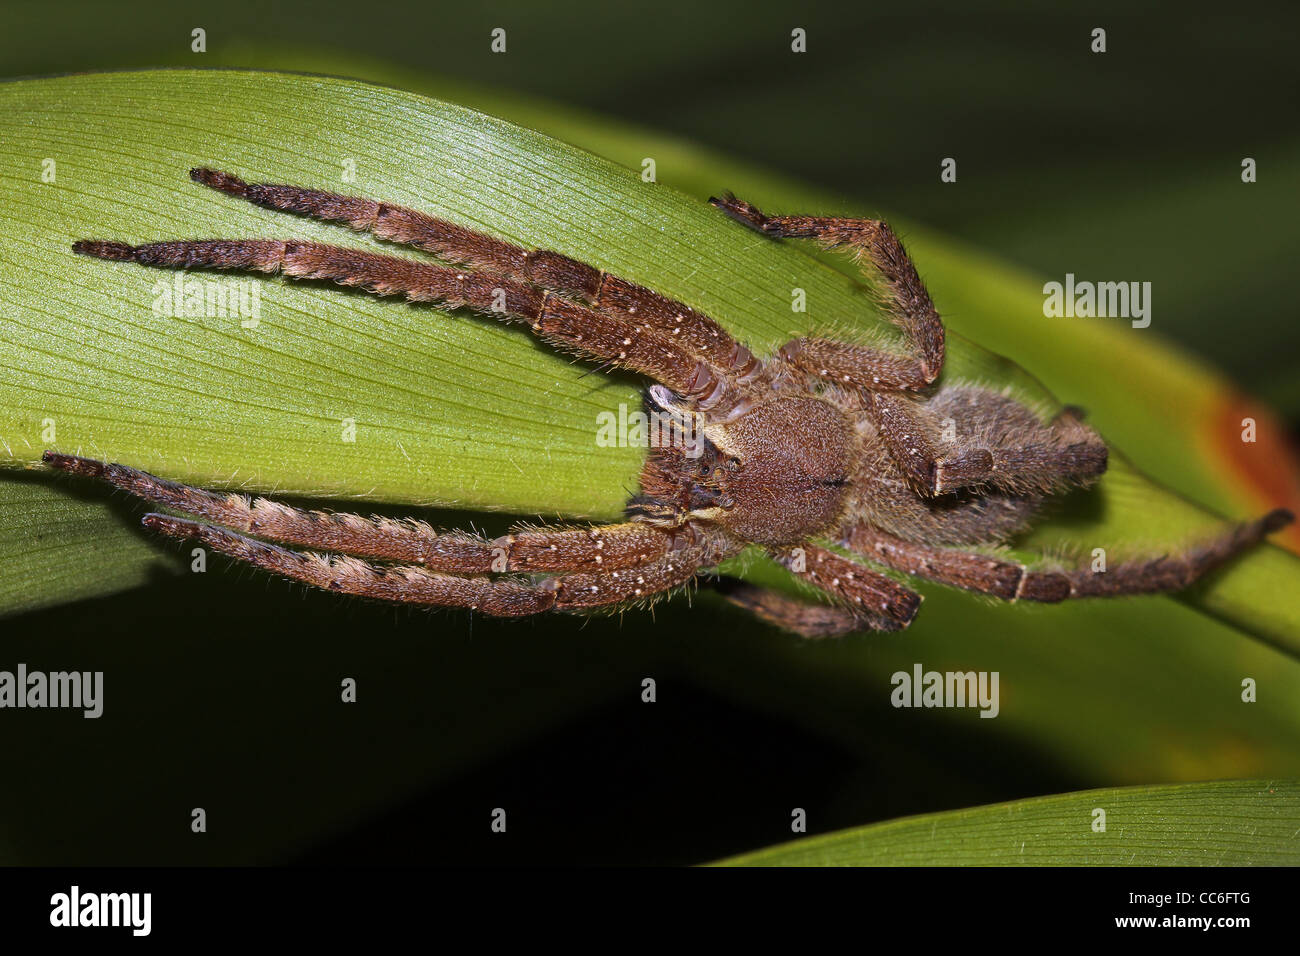 A LARGE, HAIRY, YELLOW spider in the Peruvian Amazon TERRIFYING closeups of some creepy crawlies - Stock Image